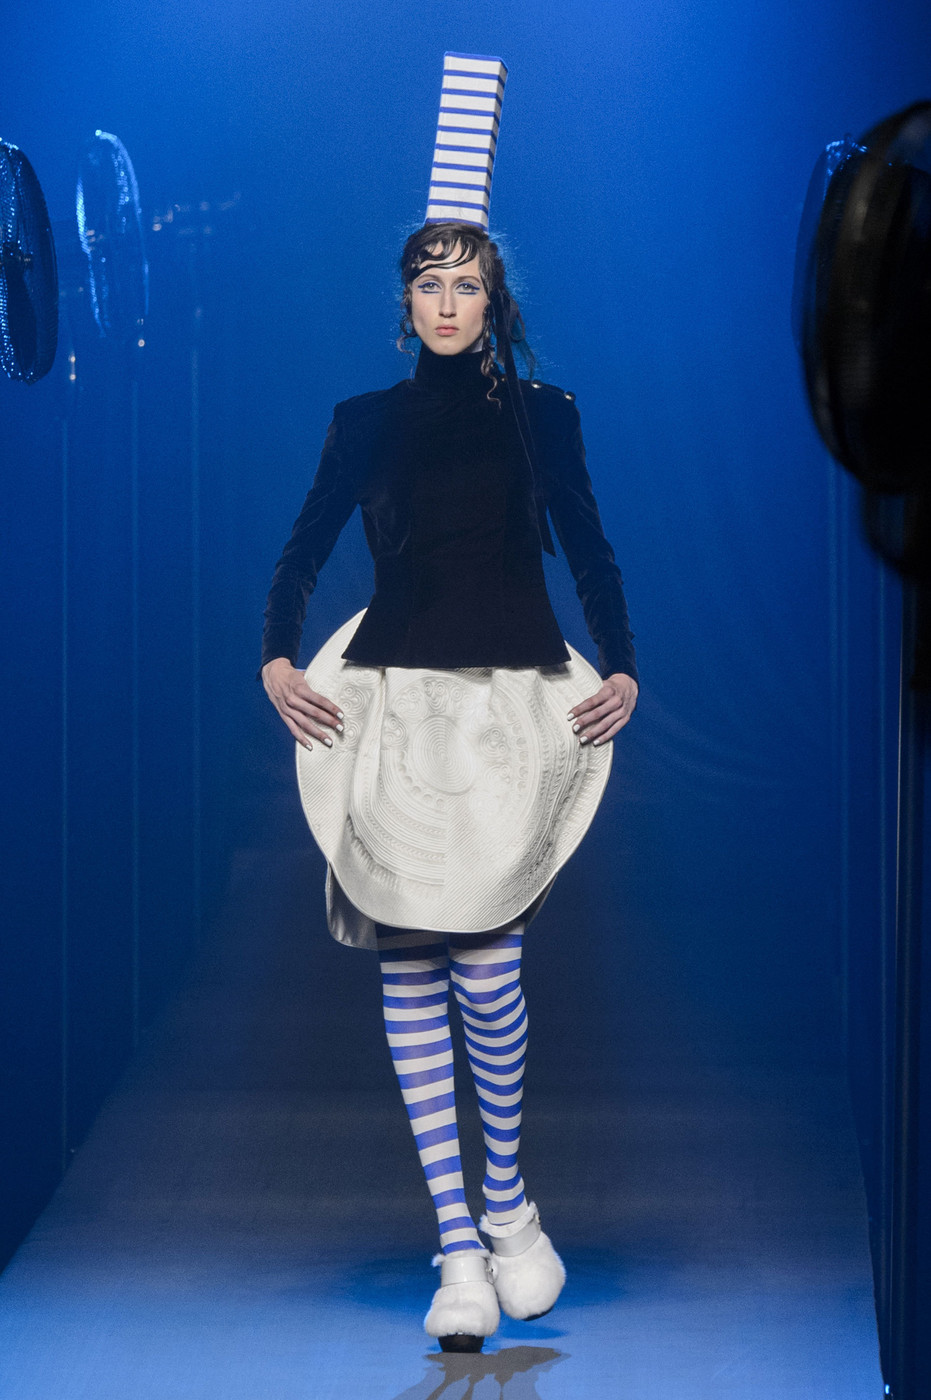 jean paul gaultier fall 2015 runway pictures livingly. Black Bedroom Furniture Sets. Home Design Ideas